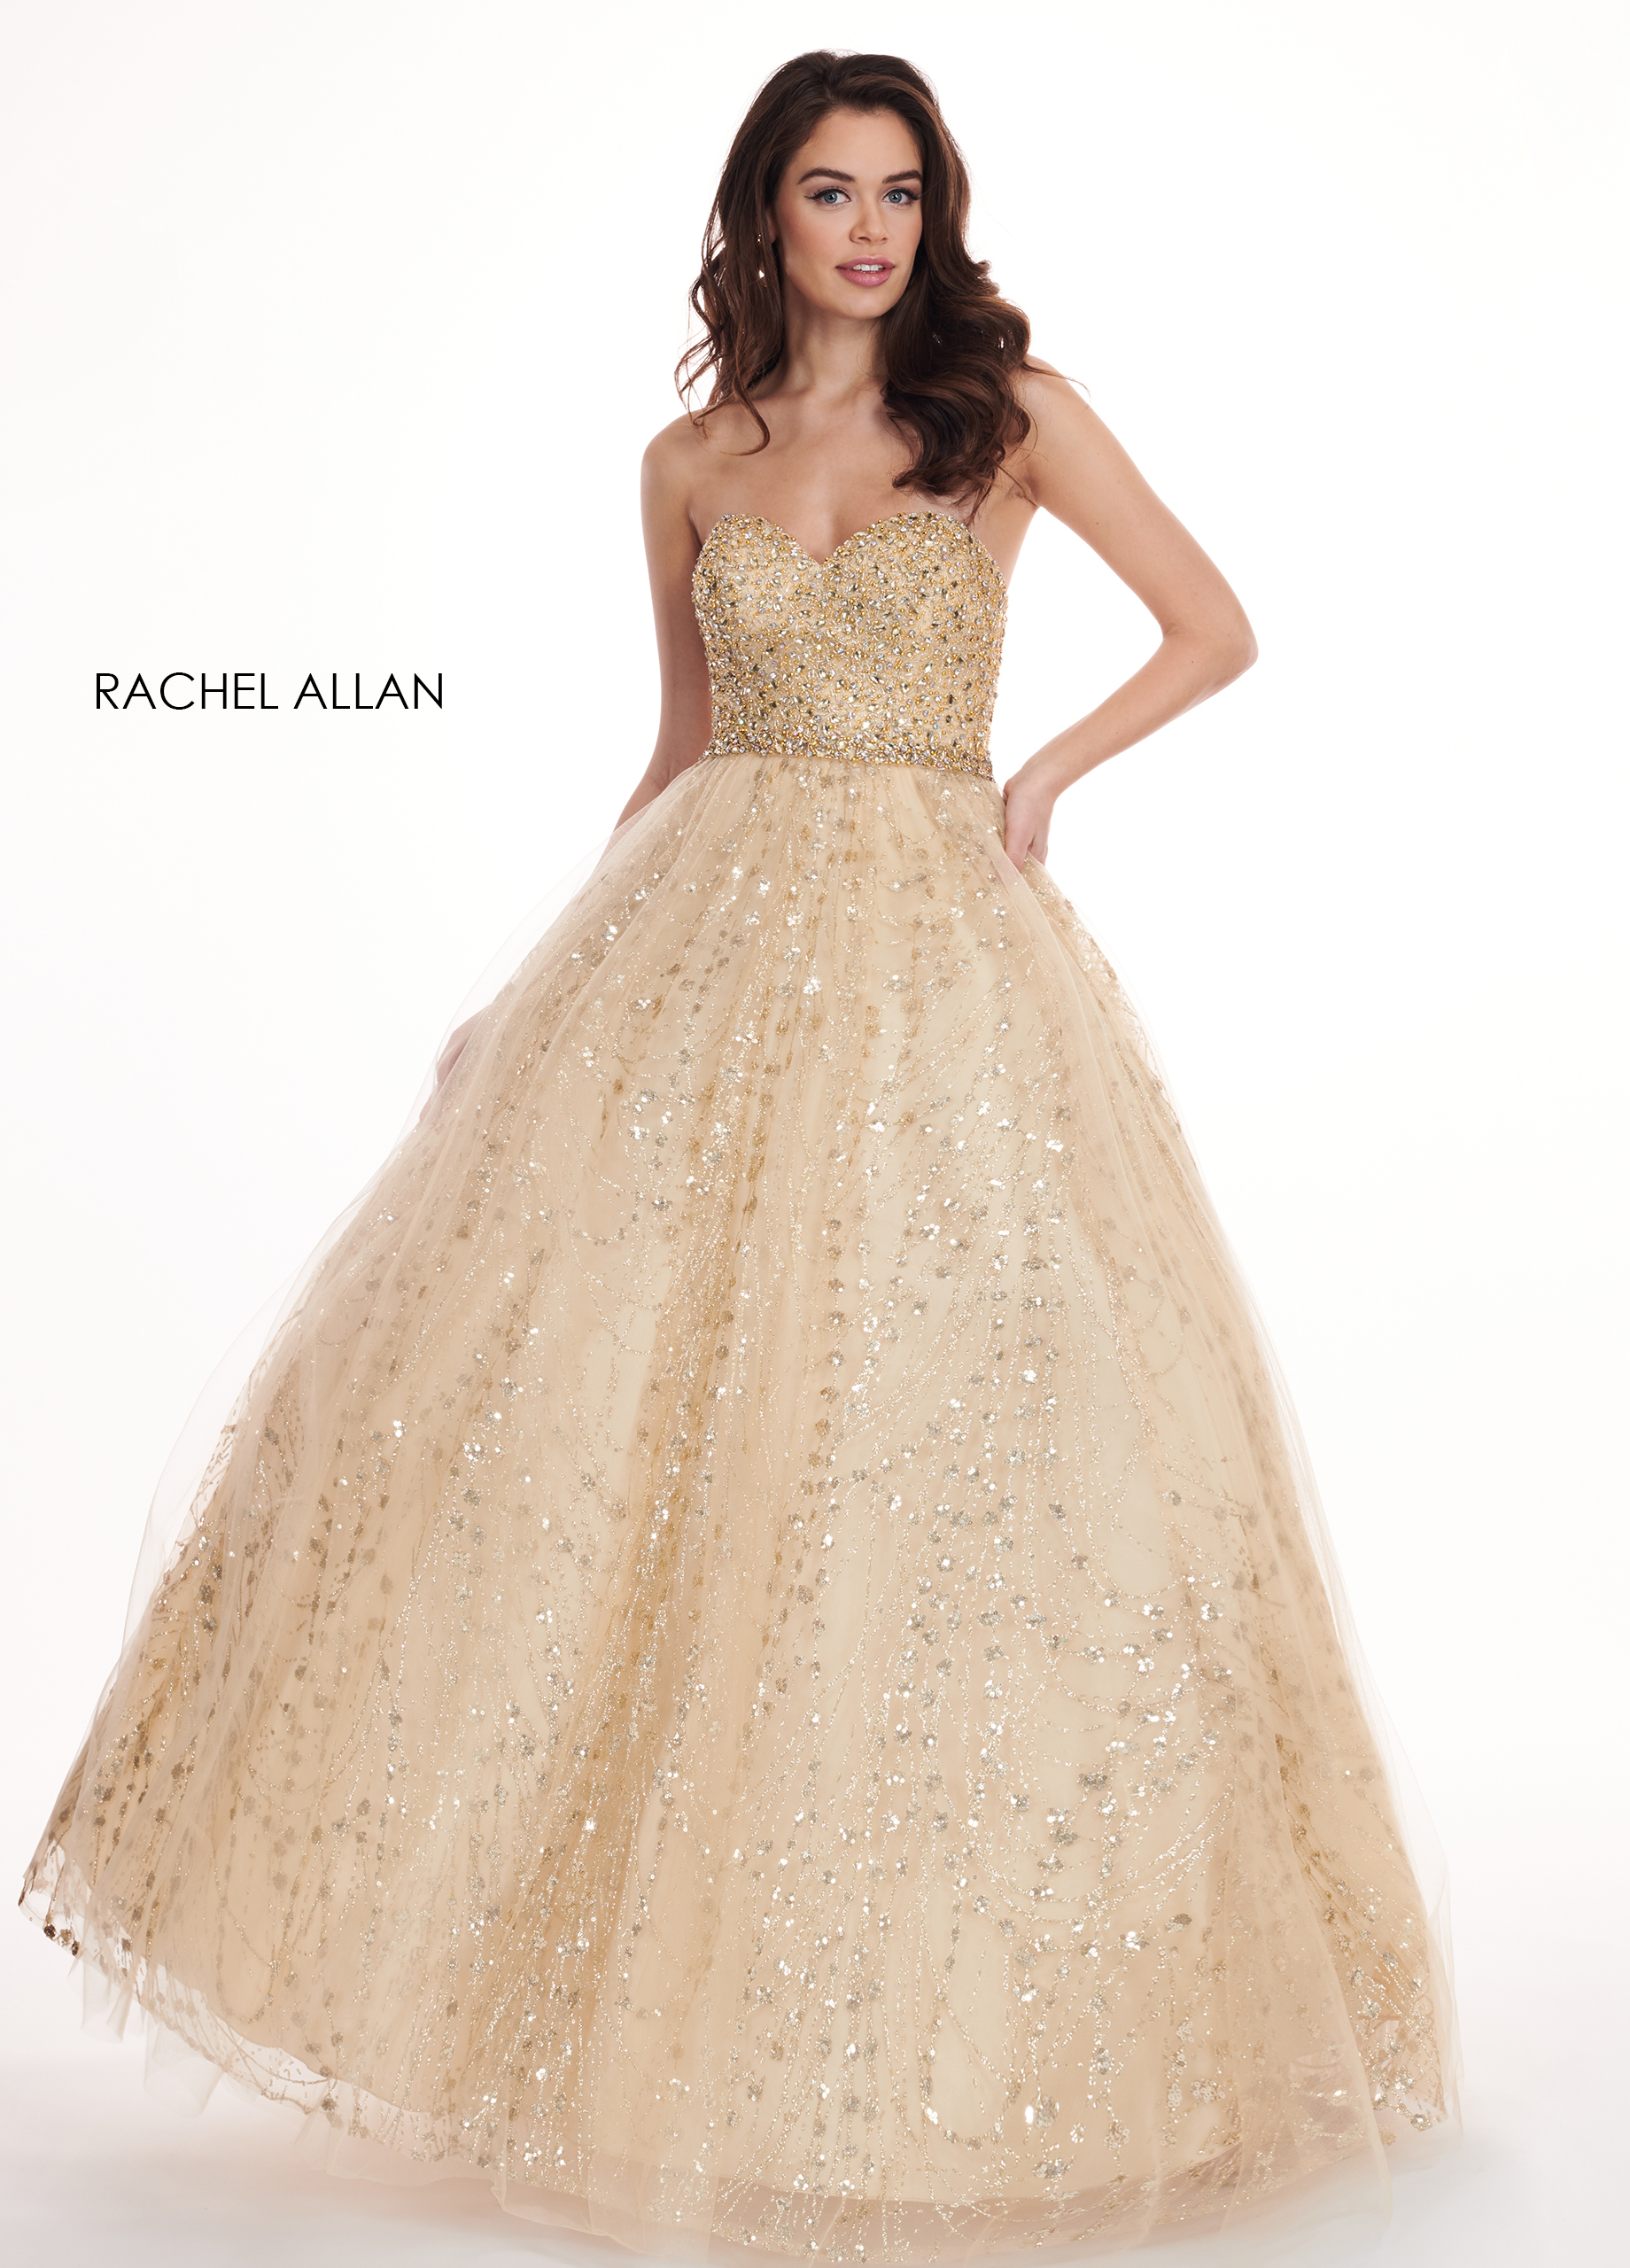 Sweetheart Ball Gowns Prom Dresses in Gold Color